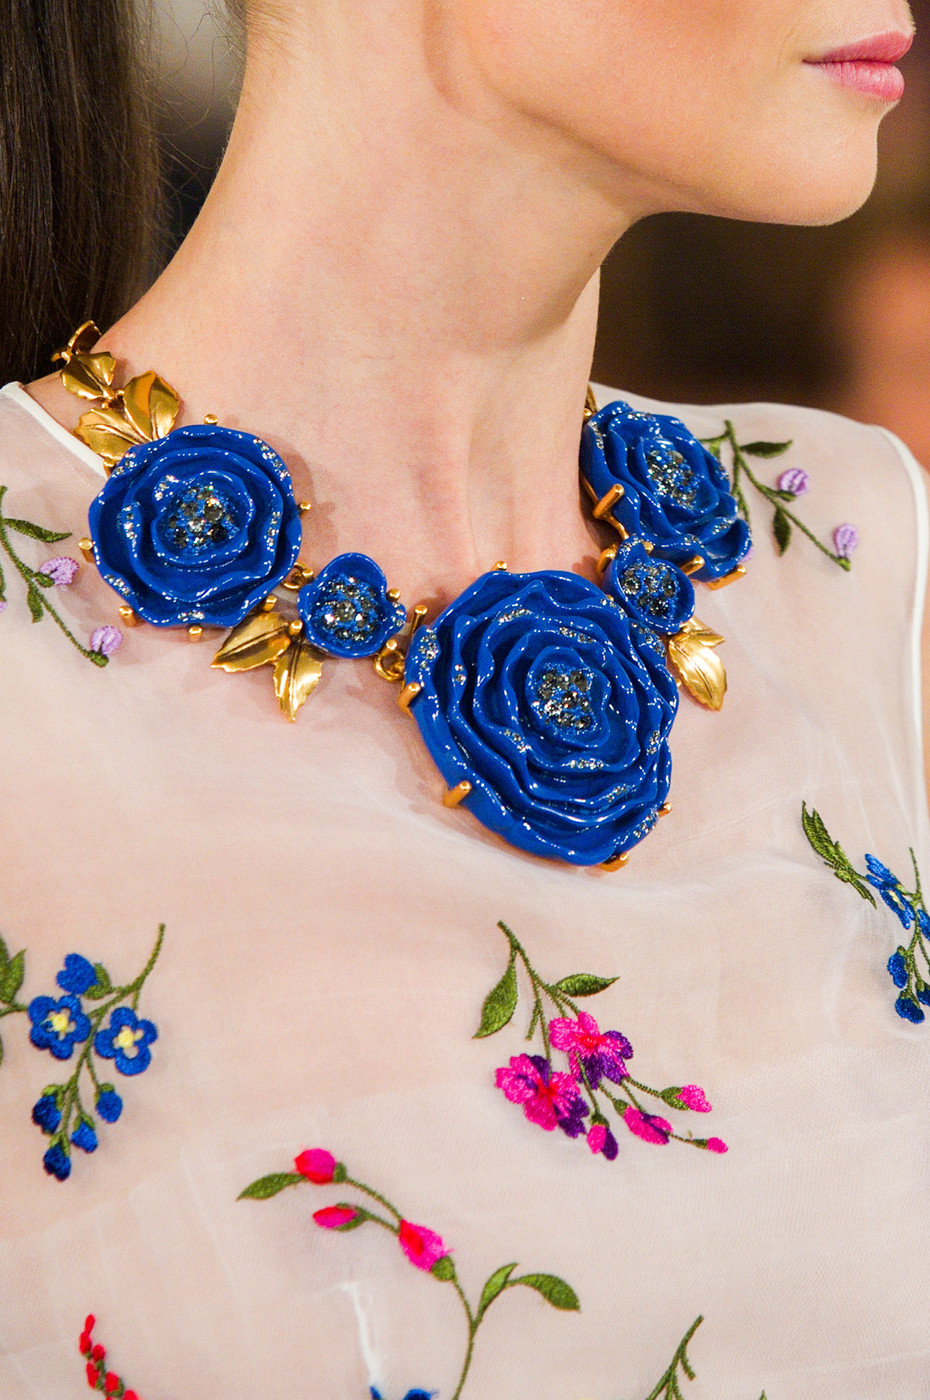 Floral bibs at oscar de la renta best jewelry from new for New top jewelry nyc prices